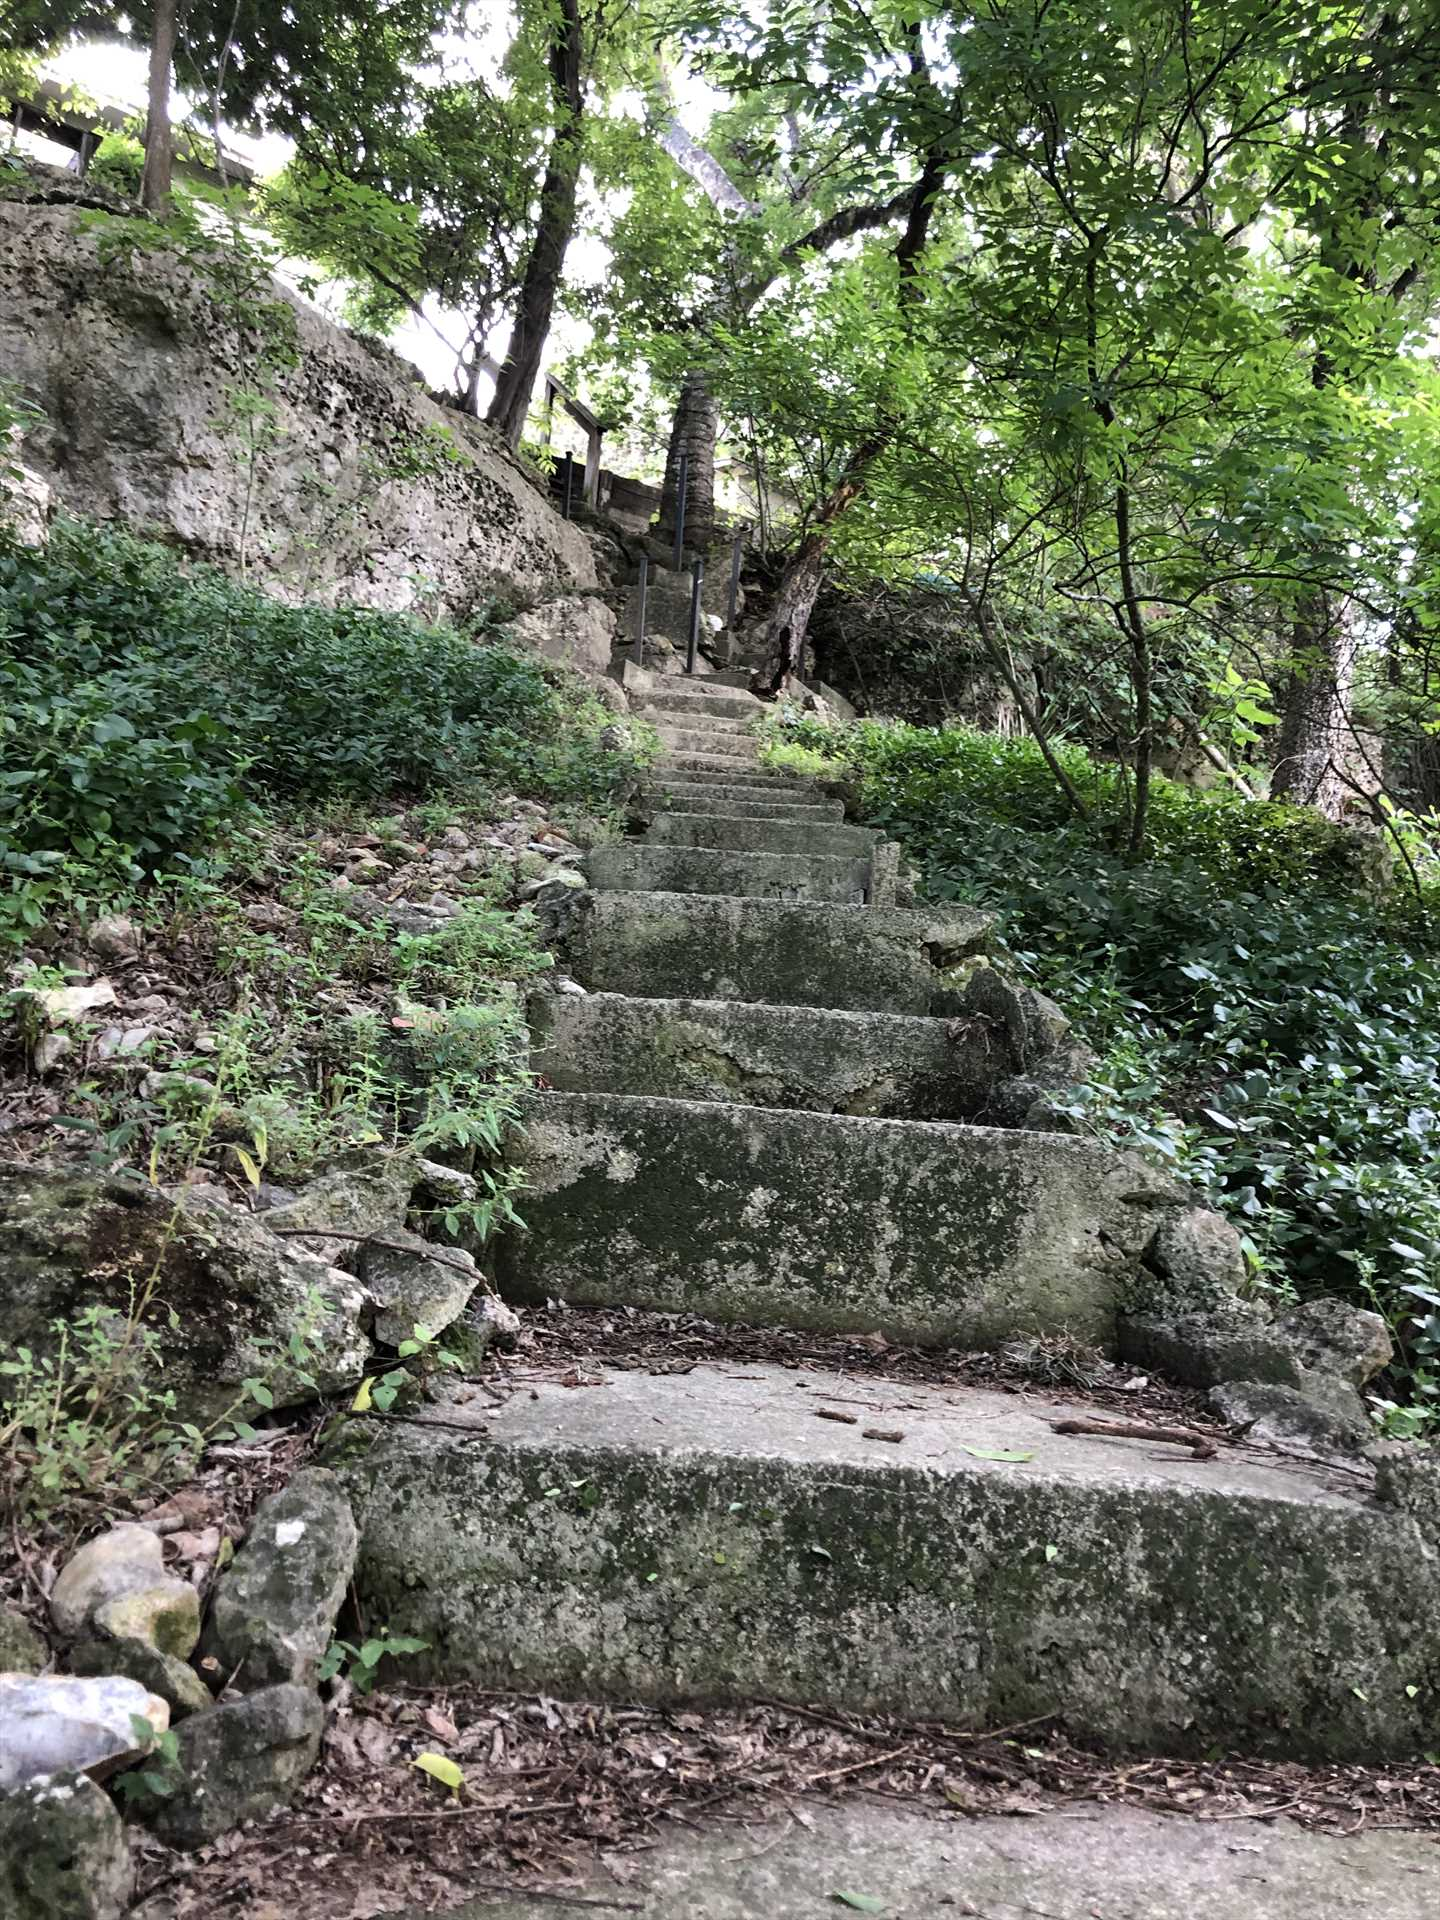 Your adventure on the Medina River begins by descending this scenic staircase.